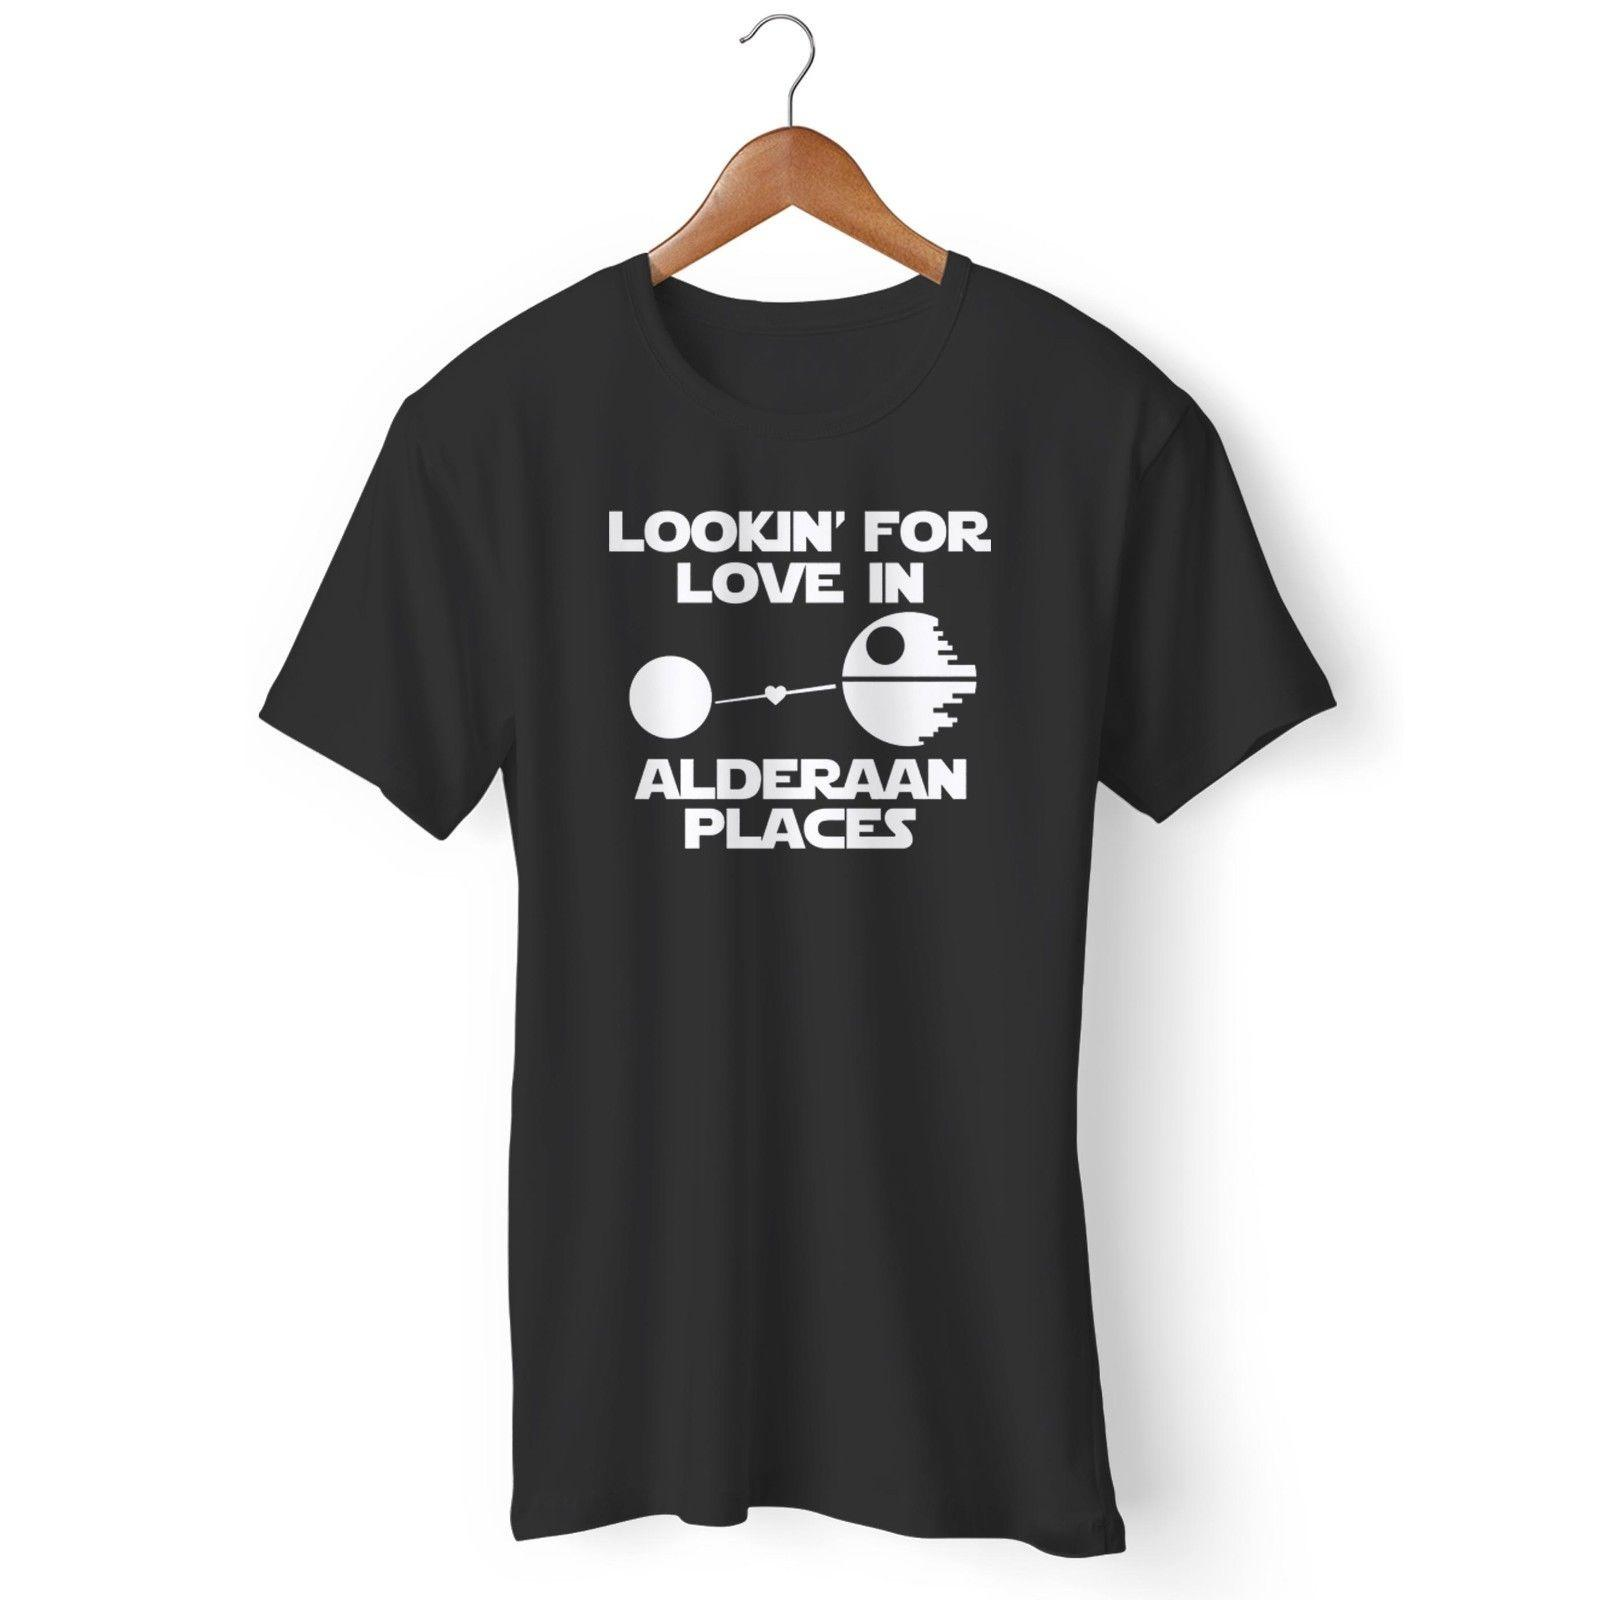 3d96ea1a Lookin For Love In Alderaan Places Funny Reddit Tu World Man's / Woman's T- Shirt Casual male tshirt men tops tees Free shipping tees